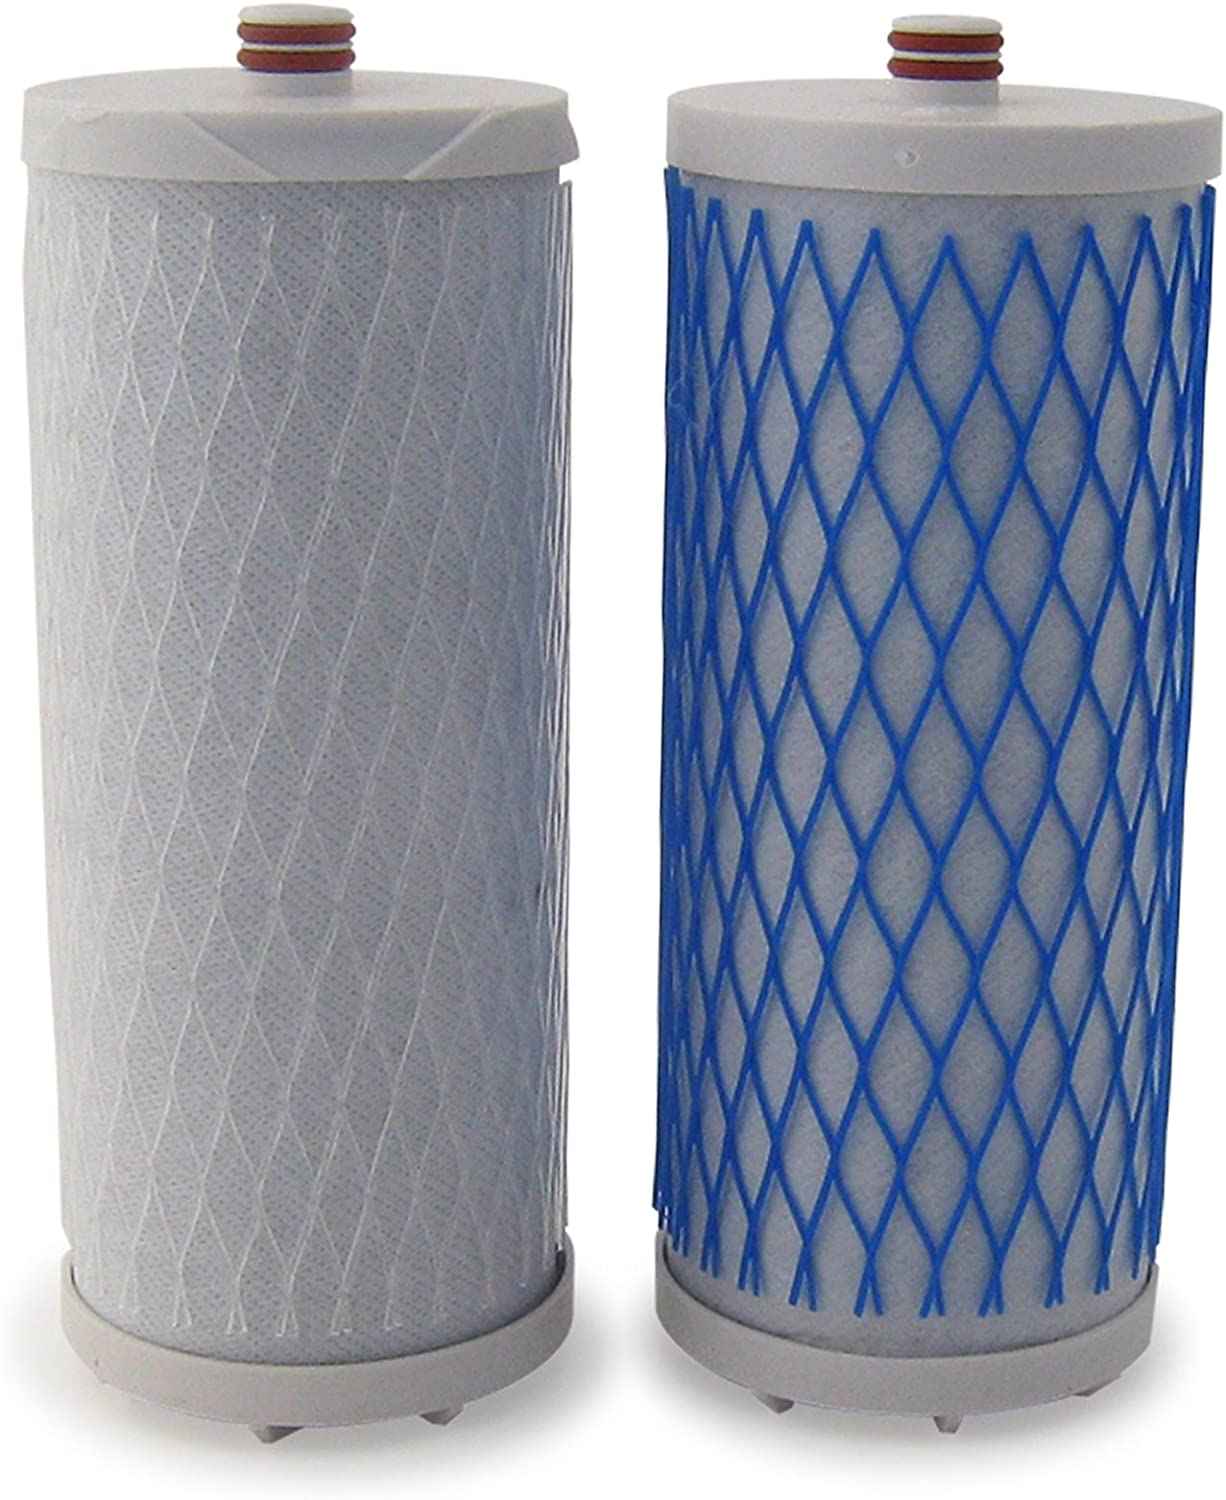 Aquasana Replacement Filter Cartridges for Aquasana Countertop Water Filtration System